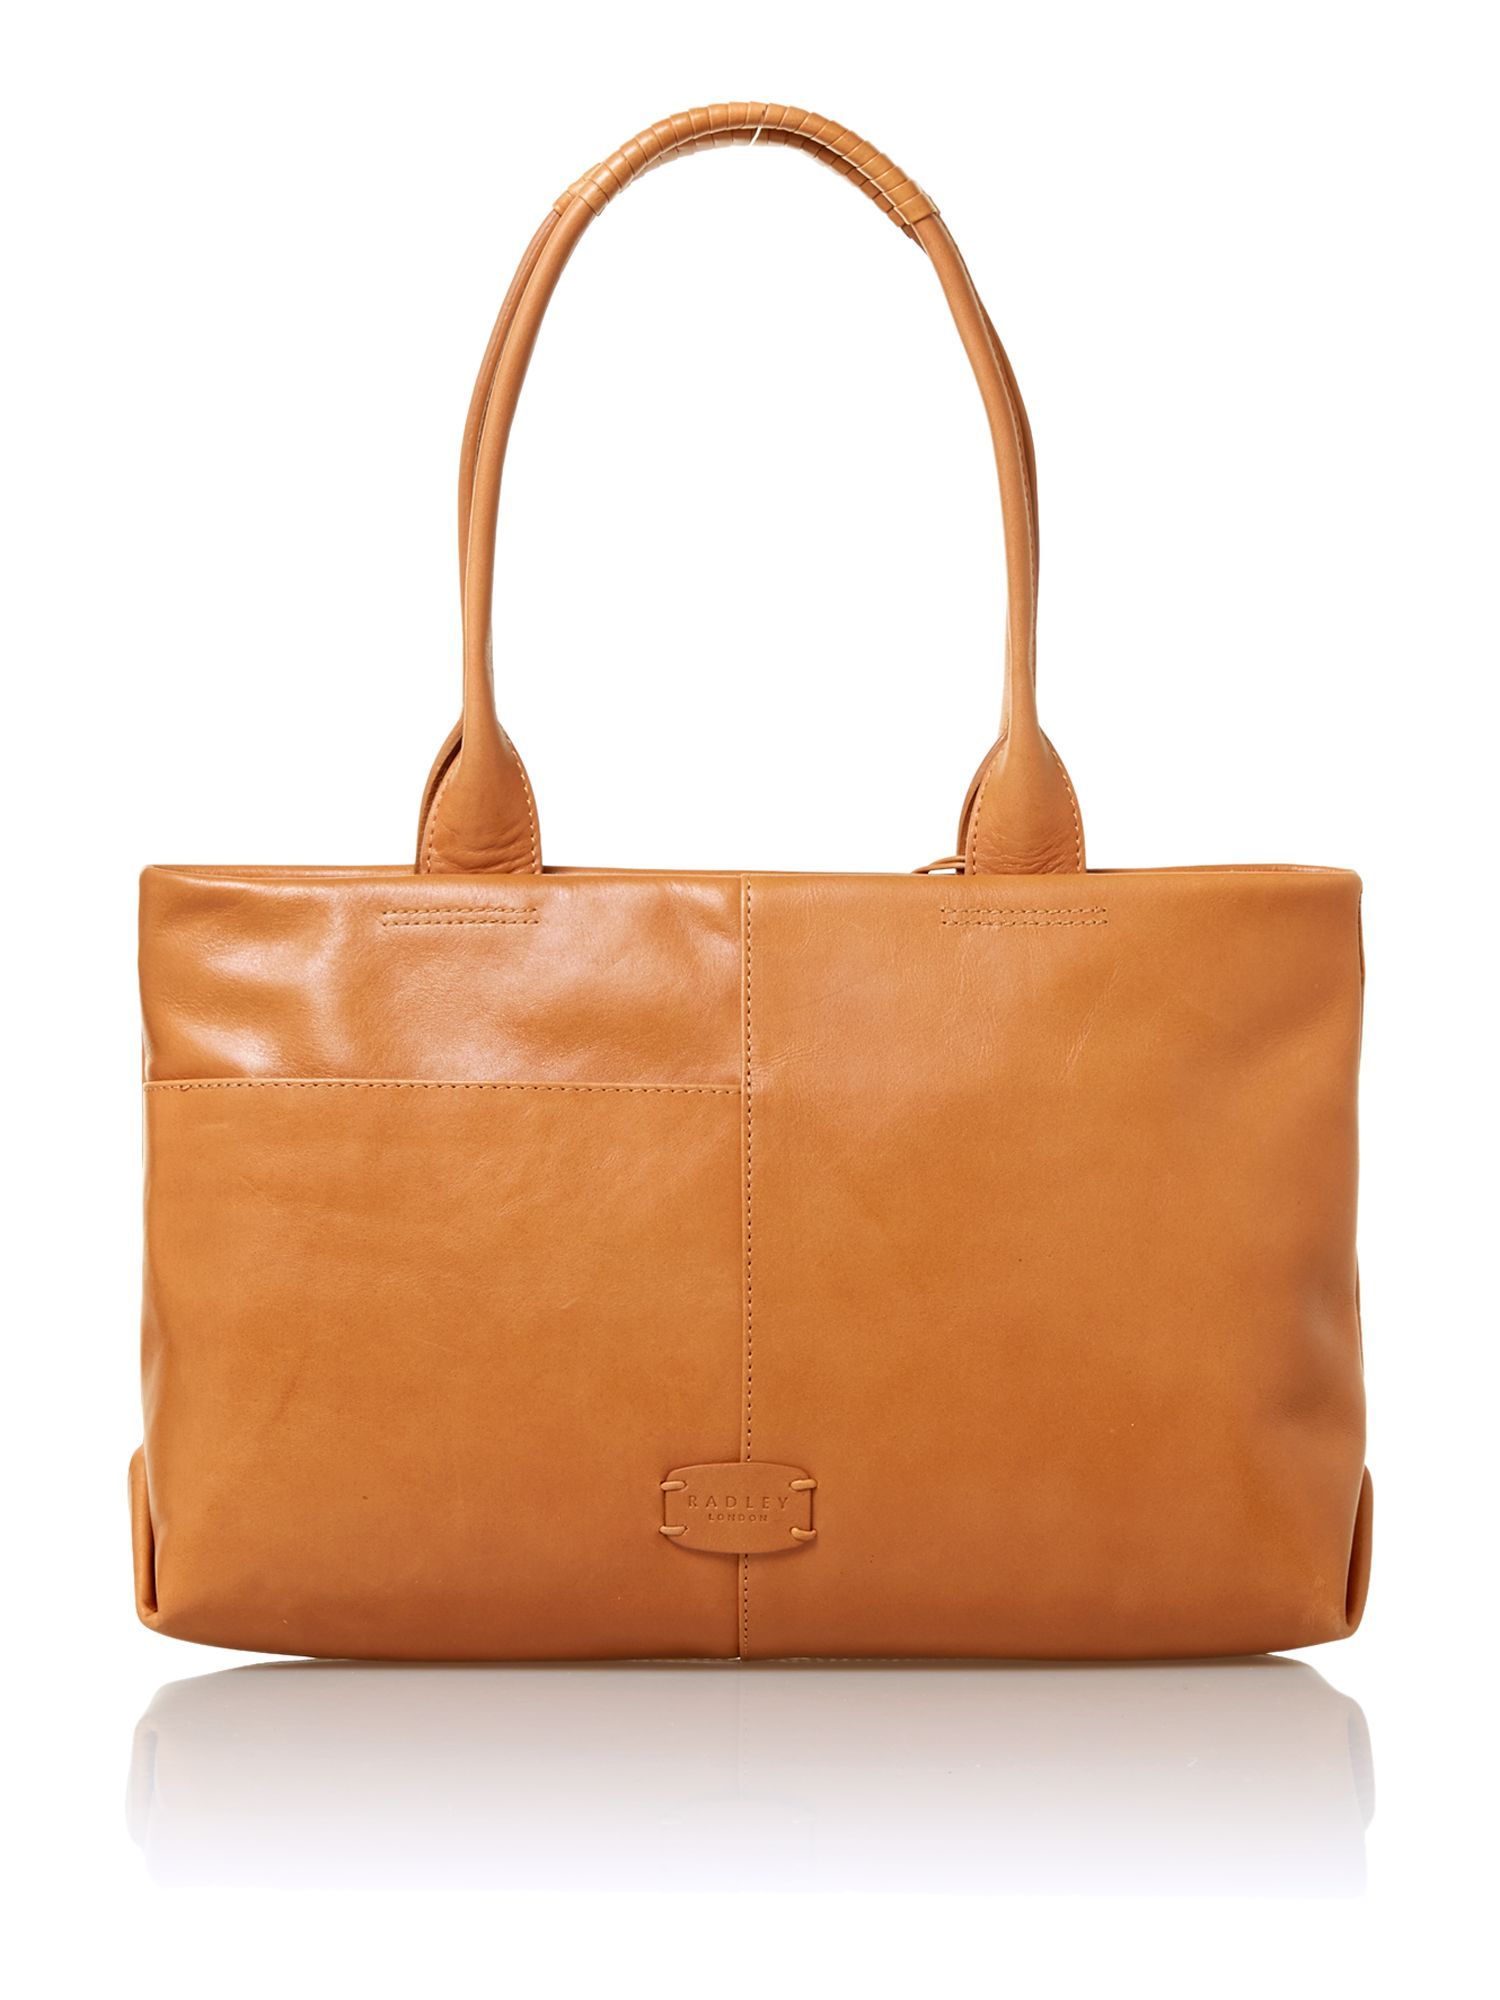 Bayford medium leather tan tote bag